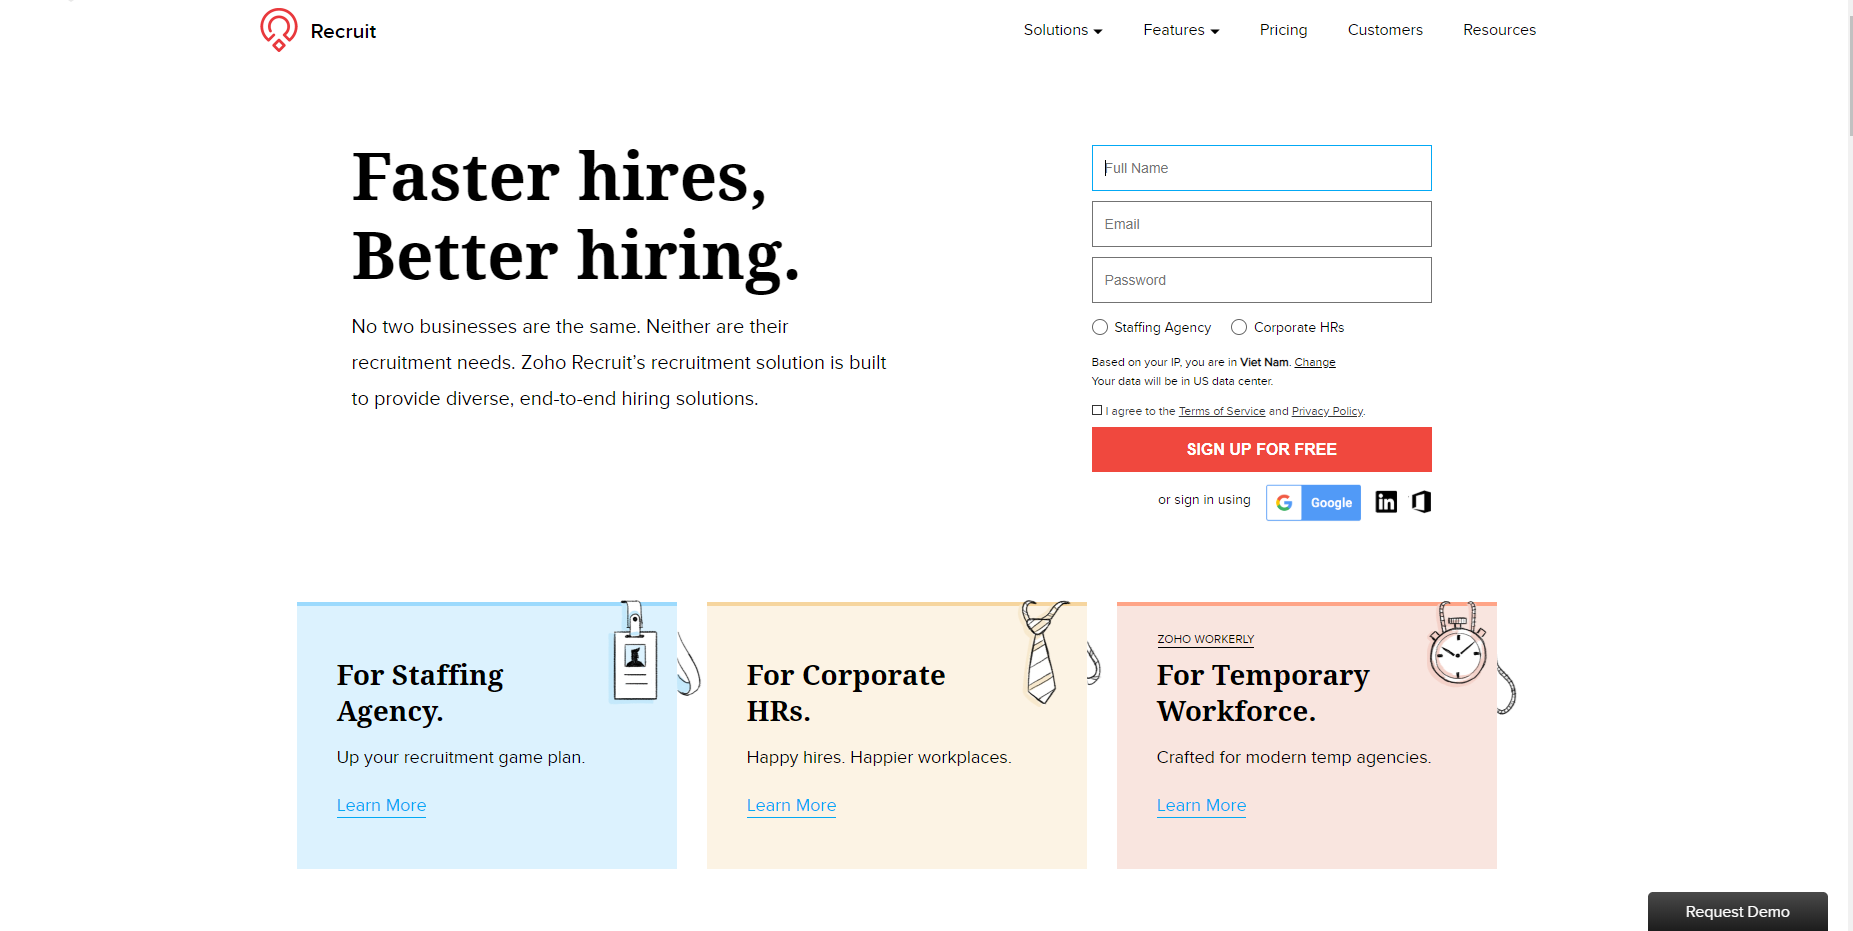 Zoho Recruit interview scheduling software